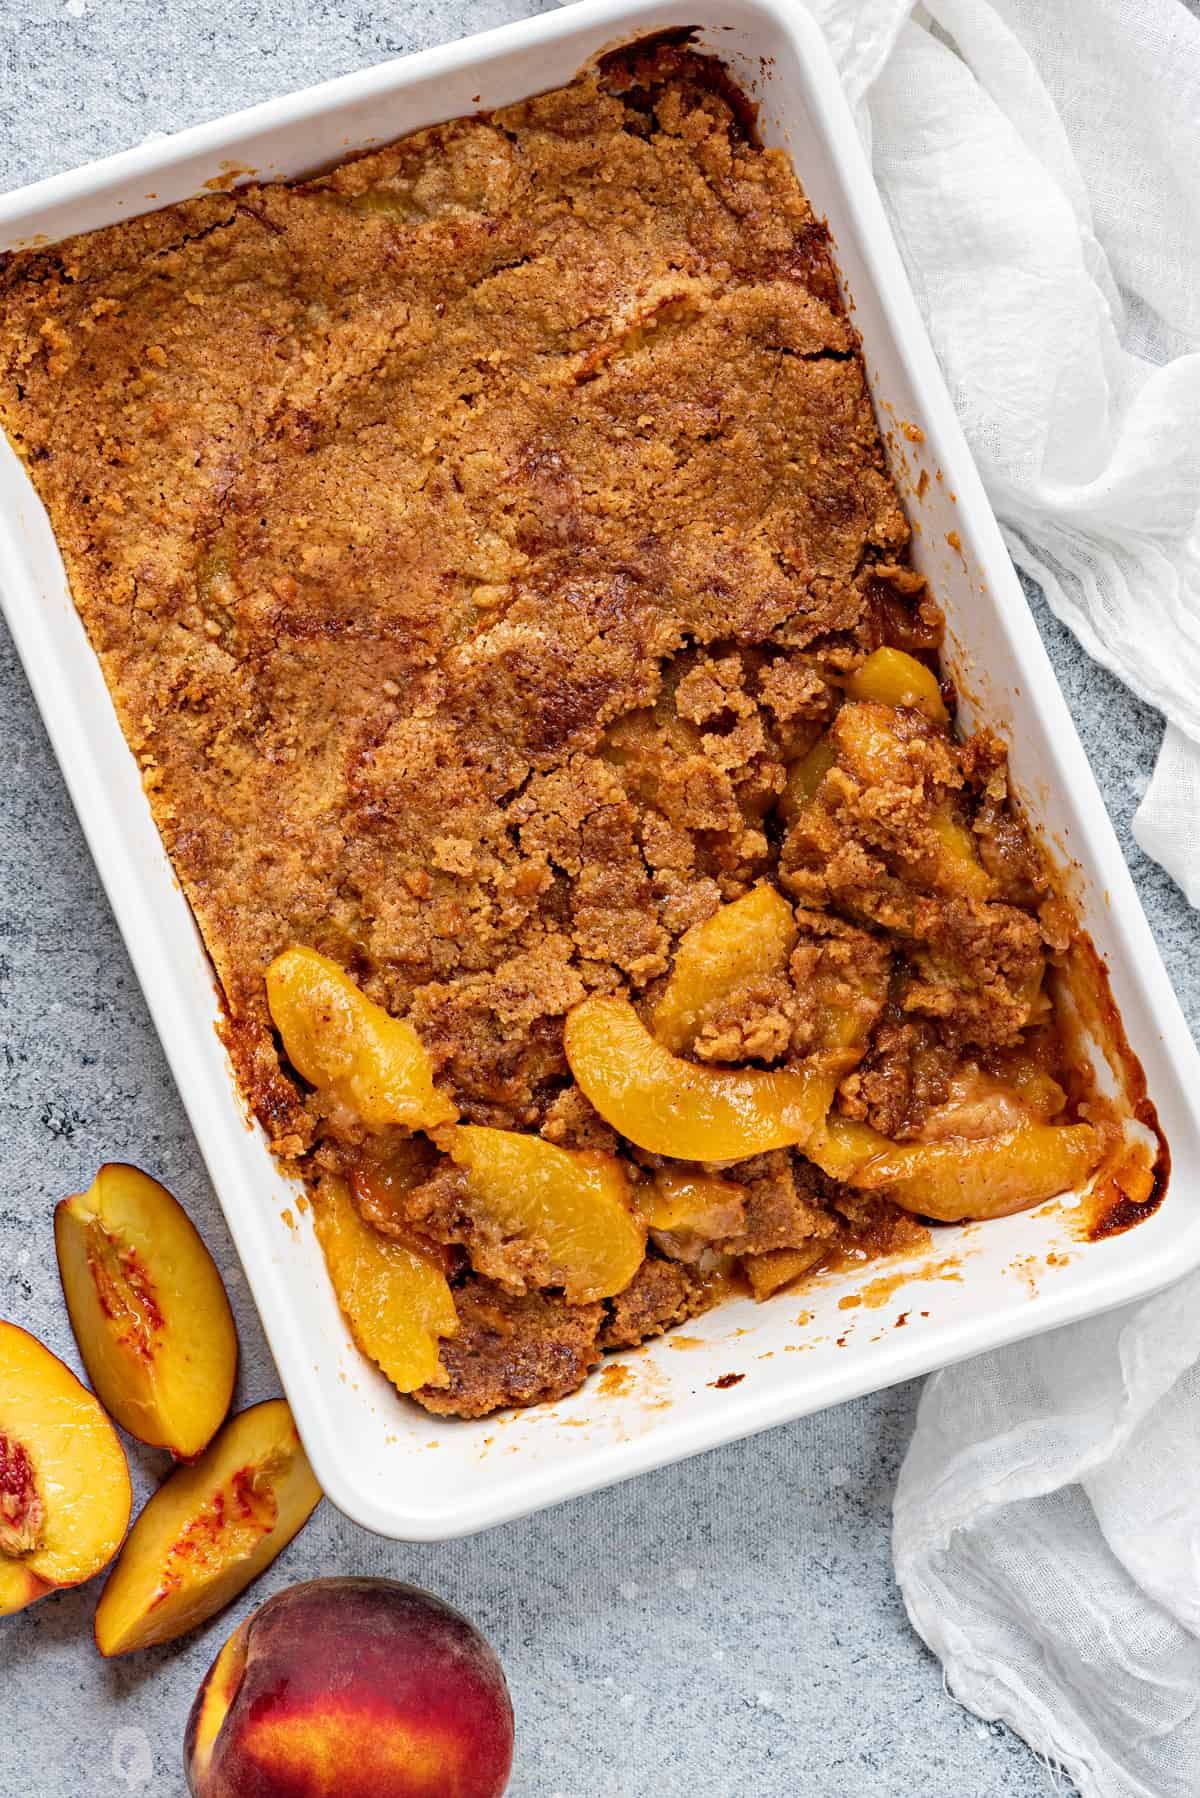 flat lay shot of white casserole dish of baked homemade peach cobbler on a grey table